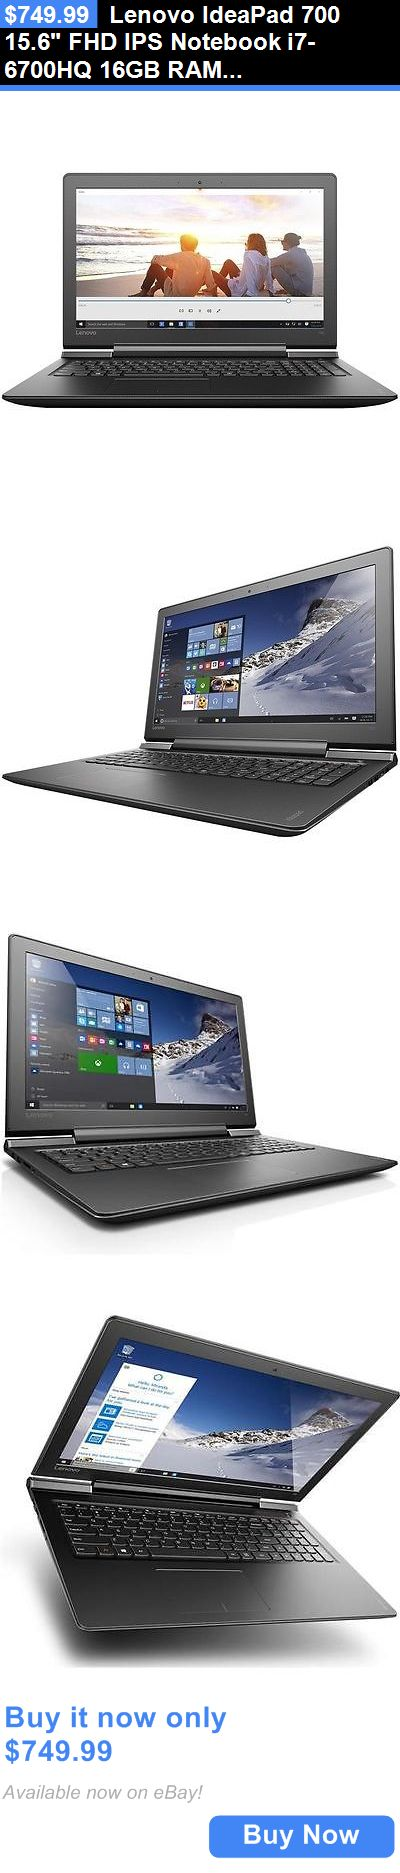 computers: Lenovo Ideapad 700 15.6 Fhd Ips Notebook I7-6700Hq 16Gb Ram 1Tb Hdd + 256Gb Ssd BUY IT NOW ONLY: $749.99